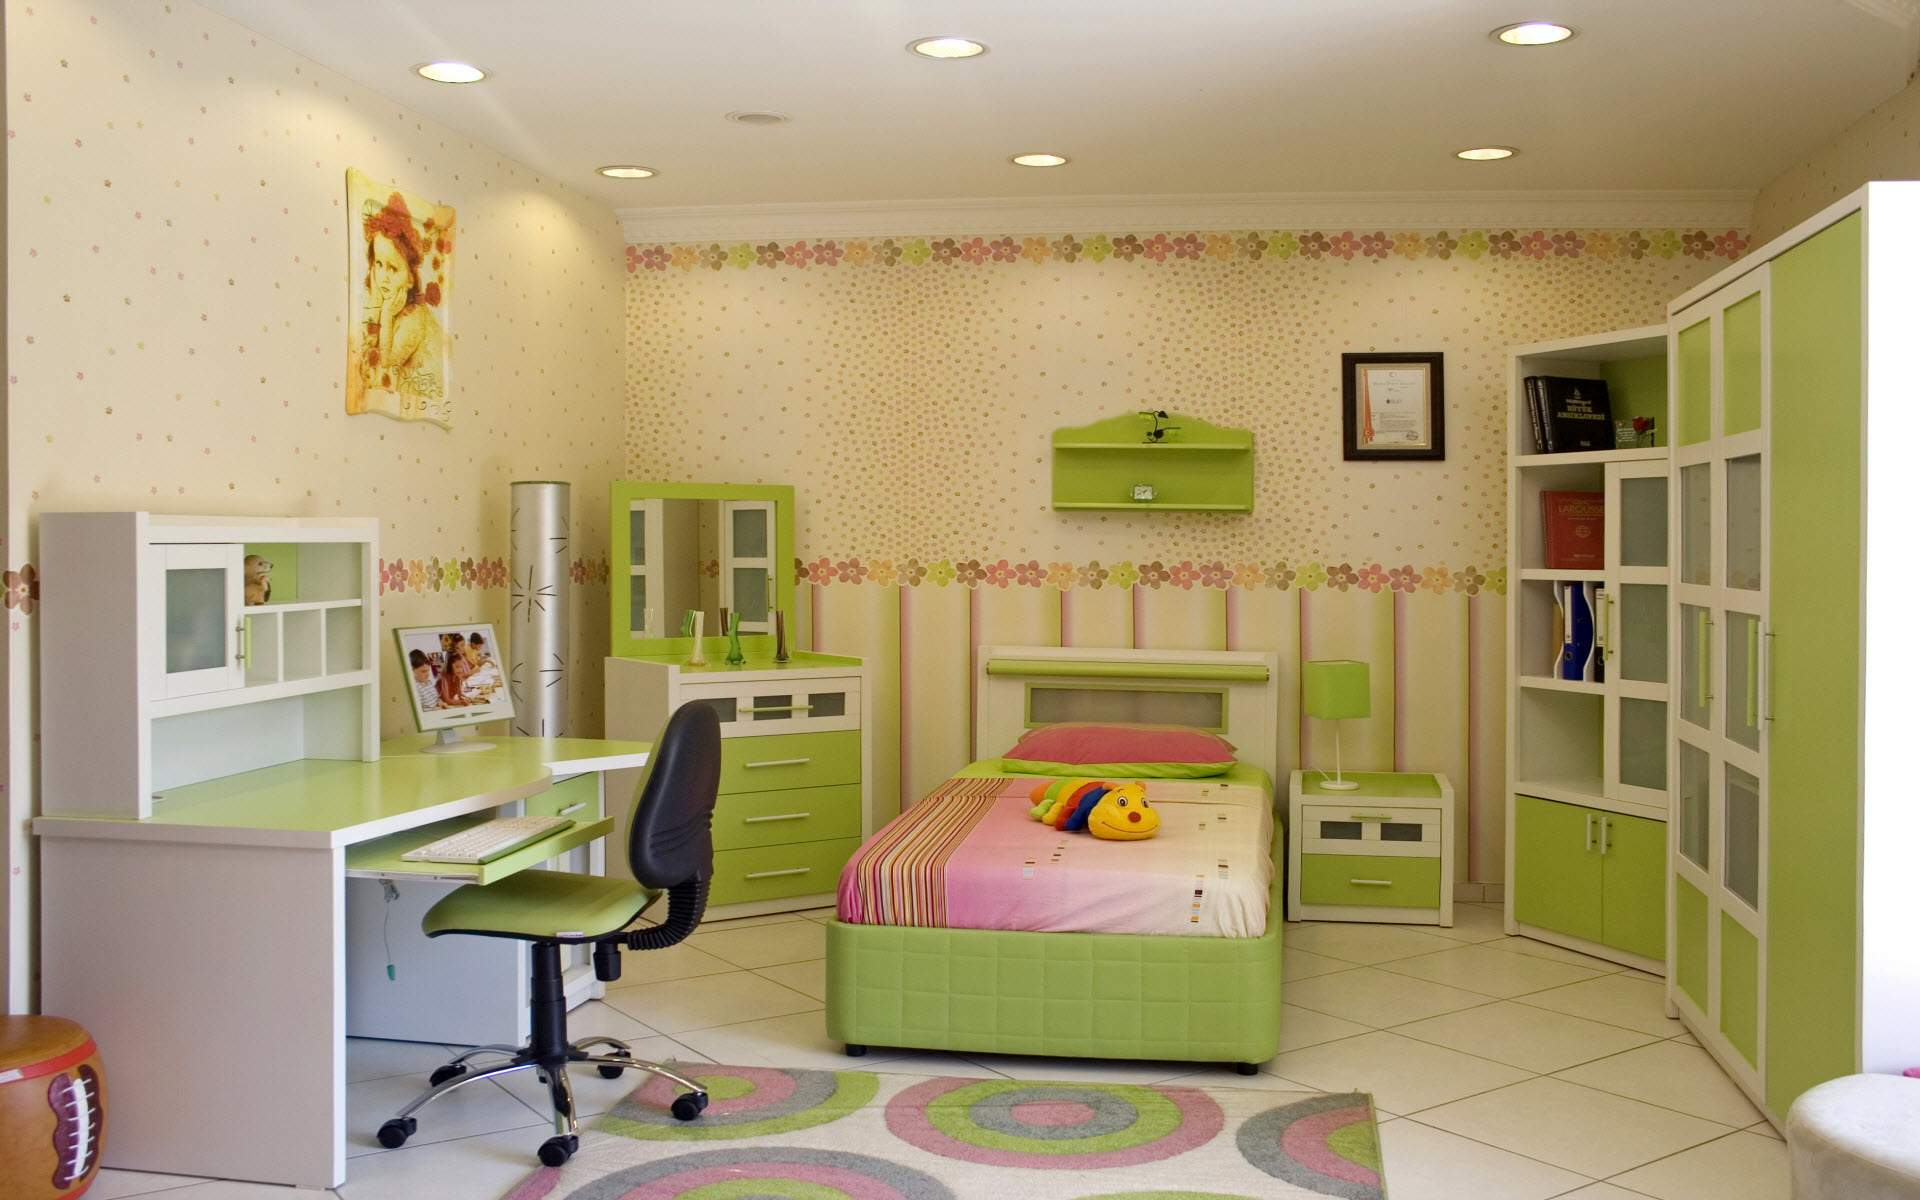 decor floor with line home free rooms room fresh safe techhungry plans of